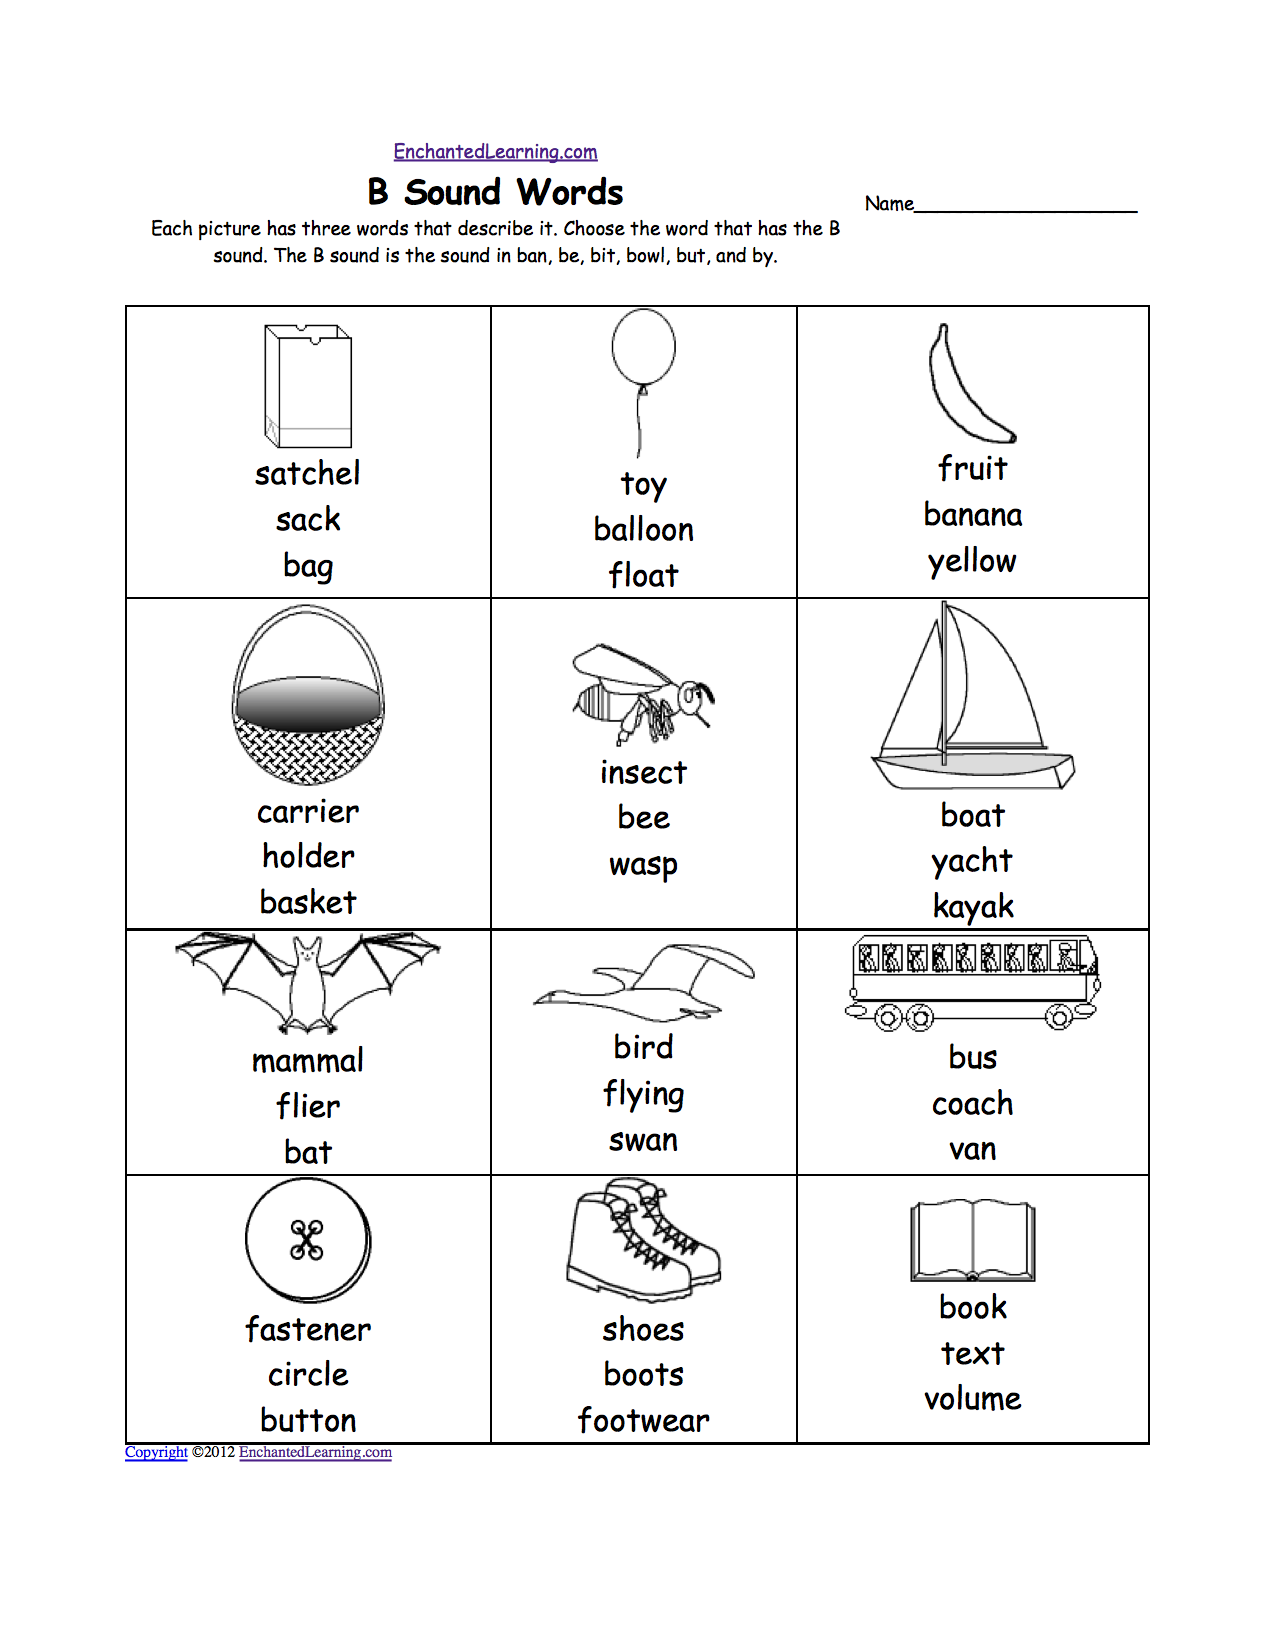 Weirdmailus  Unique Phonics Worksheets Multiple Choice Worksheets To Print  With Heavenly Quotbquot Sound Phonics Worksheet Multiple Choice Each Picture Has Three Words That Describe It Choose The Word That Has A Quotbquot Sound The Quotbquot Sound Is The Sound  With Astonishing Box Whisker Plot Worksheet Also Goal Setting Worksheet For Kids In Addition Pronouns Worksheets Nd Grade And Printable Health Worksheets As Well As Composite Shapes Area Worksheet Additionally Grocery Store Math Worksheets From Enchantedlearningcom With Weirdmailus  Heavenly Phonics Worksheets Multiple Choice Worksheets To Print  With Astonishing Quotbquot Sound Phonics Worksheet Multiple Choice Each Picture Has Three Words That Describe It Choose The Word That Has A Quotbquot Sound The Quotbquot Sound Is The Sound  And Unique Box Whisker Plot Worksheet Also Goal Setting Worksheet For Kids In Addition Pronouns Worksheets Nd Grade From Enchantedlearningcom